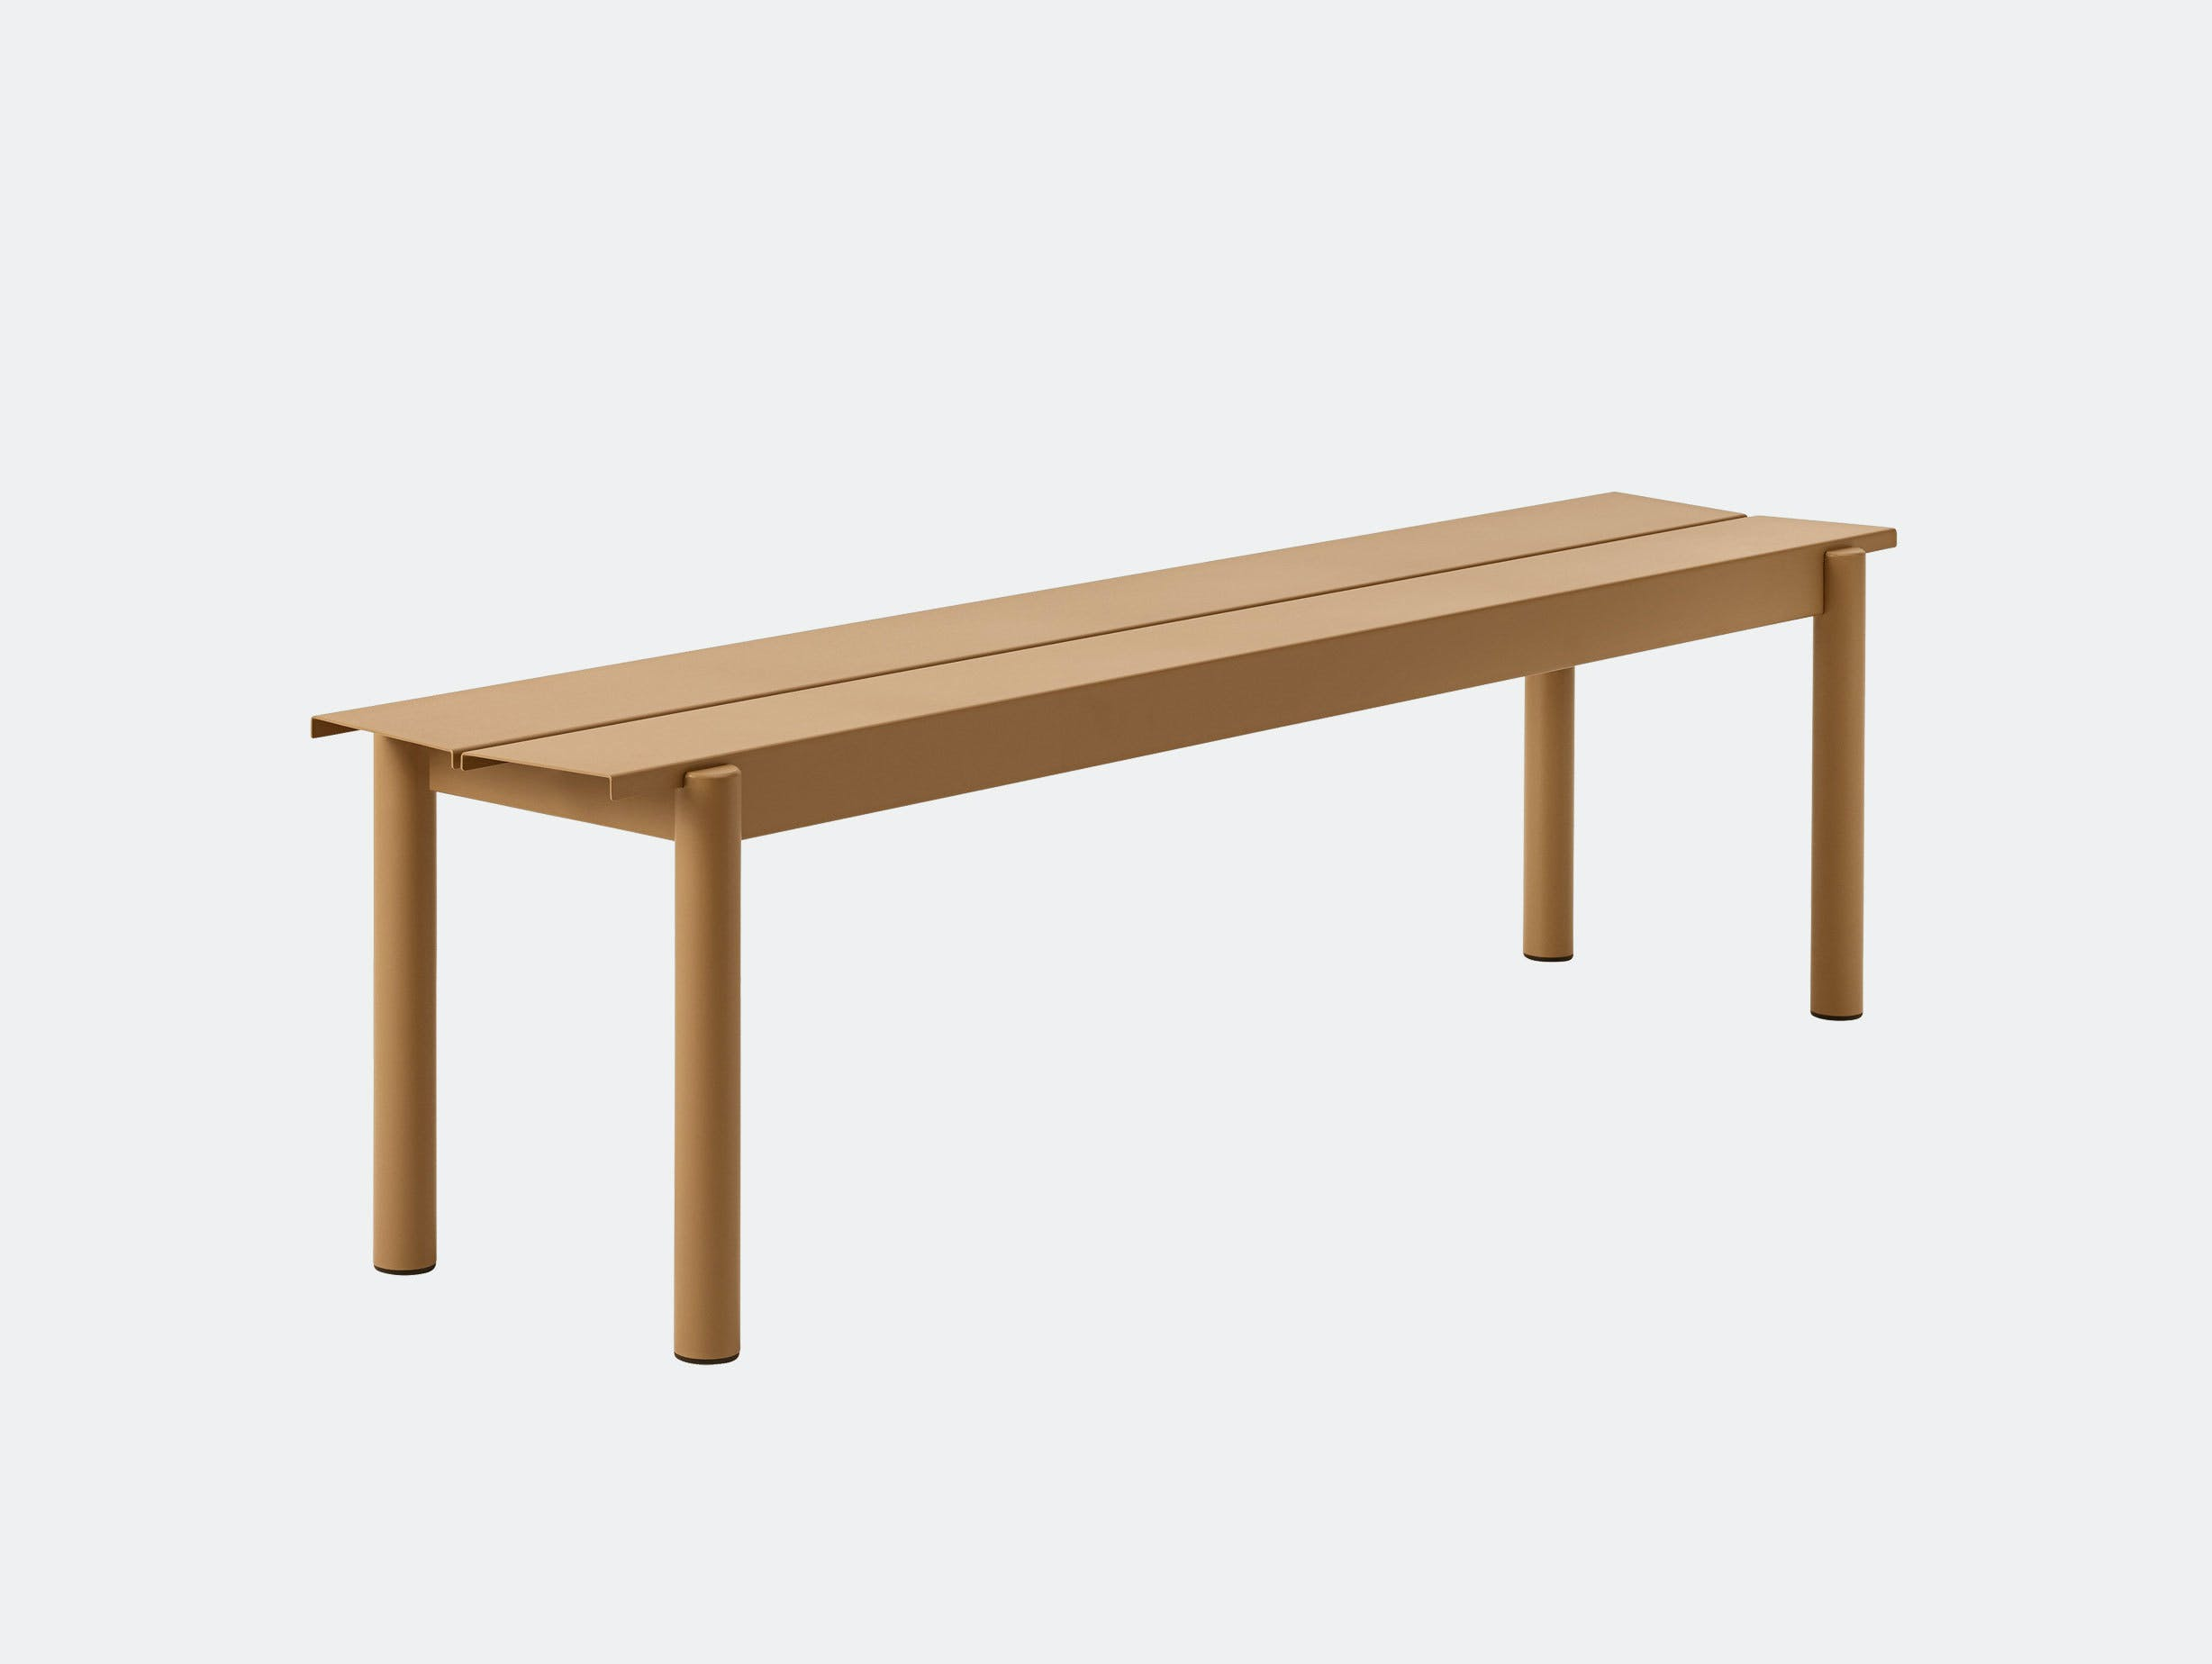 Muuto Linear Steel Outdoor Bench L 170Cm Burnt Orange Thomas Bentzen